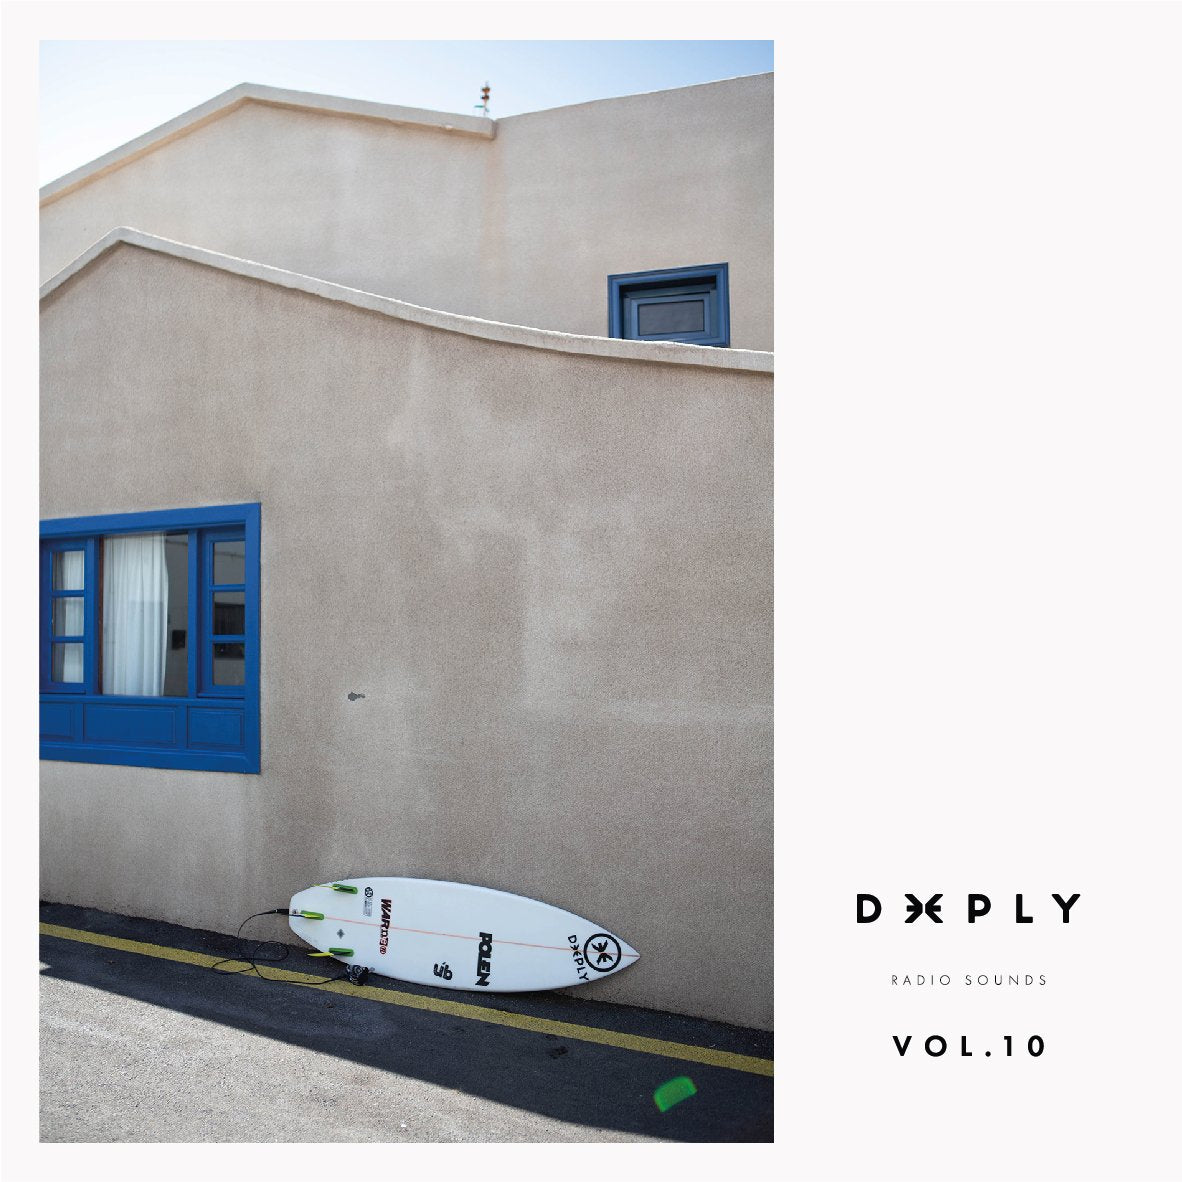 Deeply Radio Sounds Vol.10